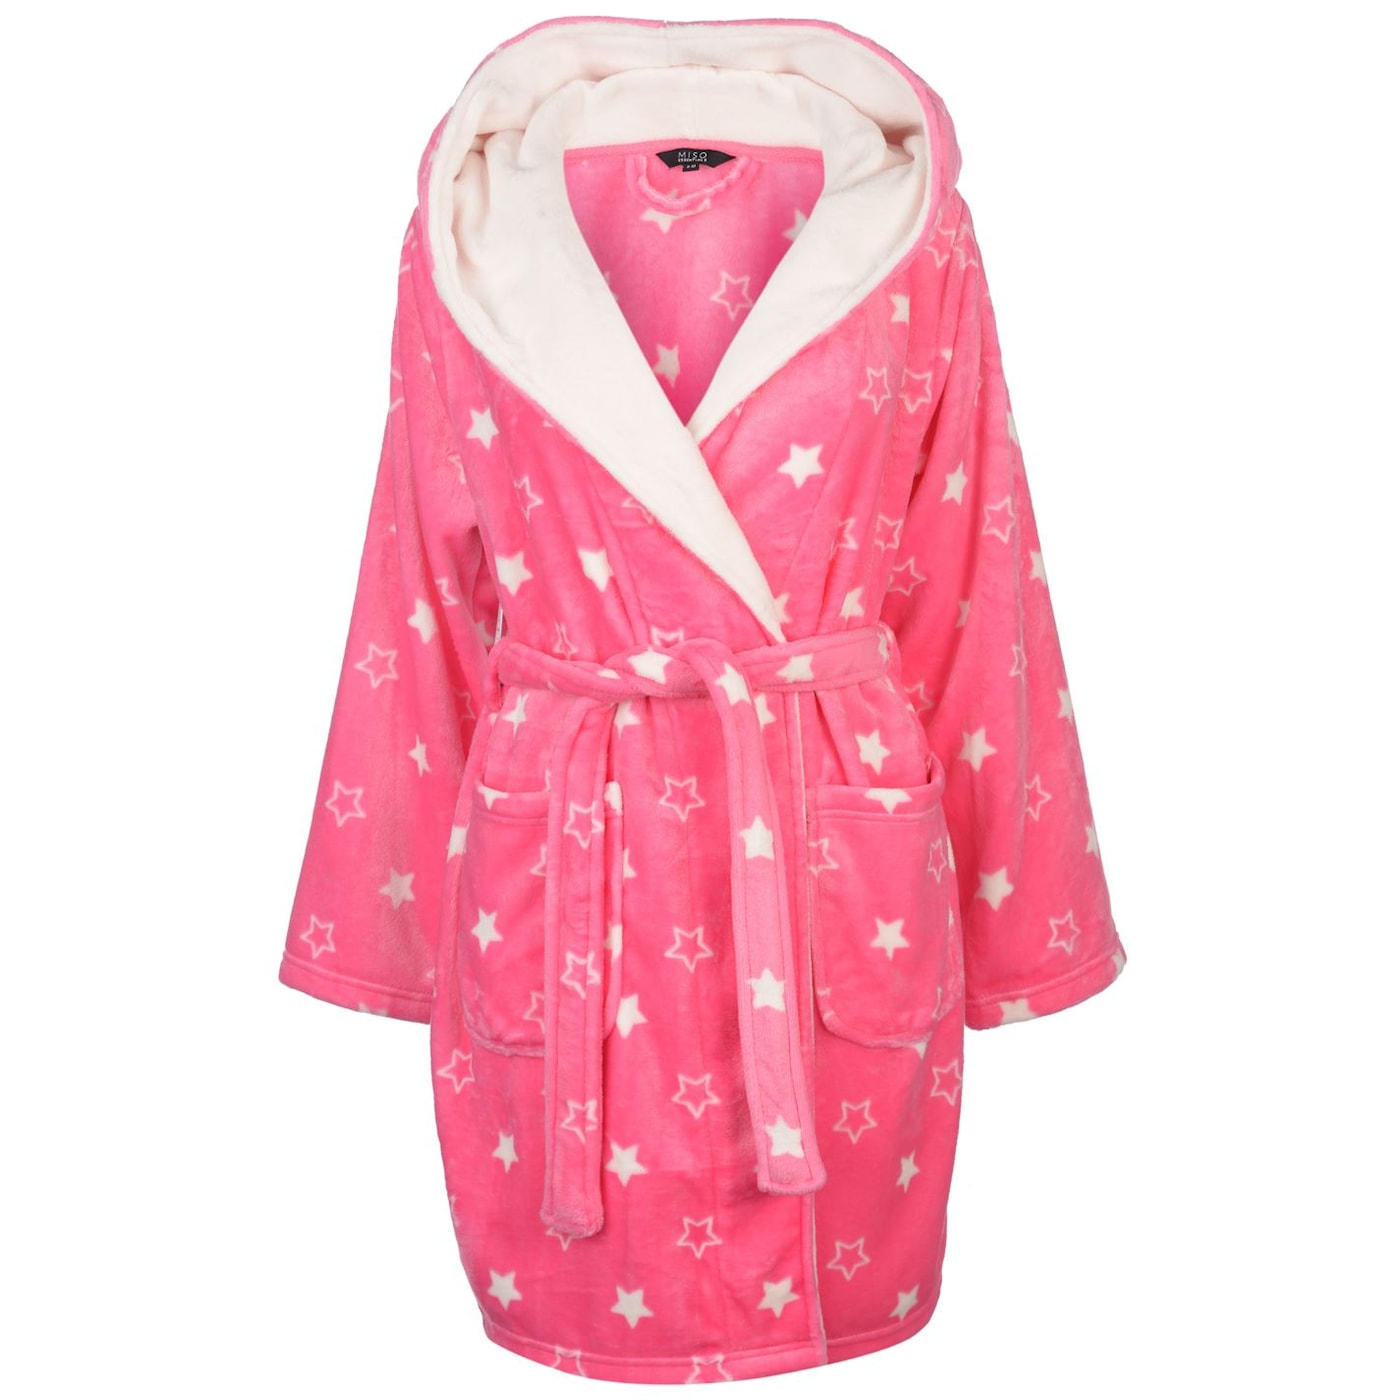 Miso Printed Fleece Robe Ladies